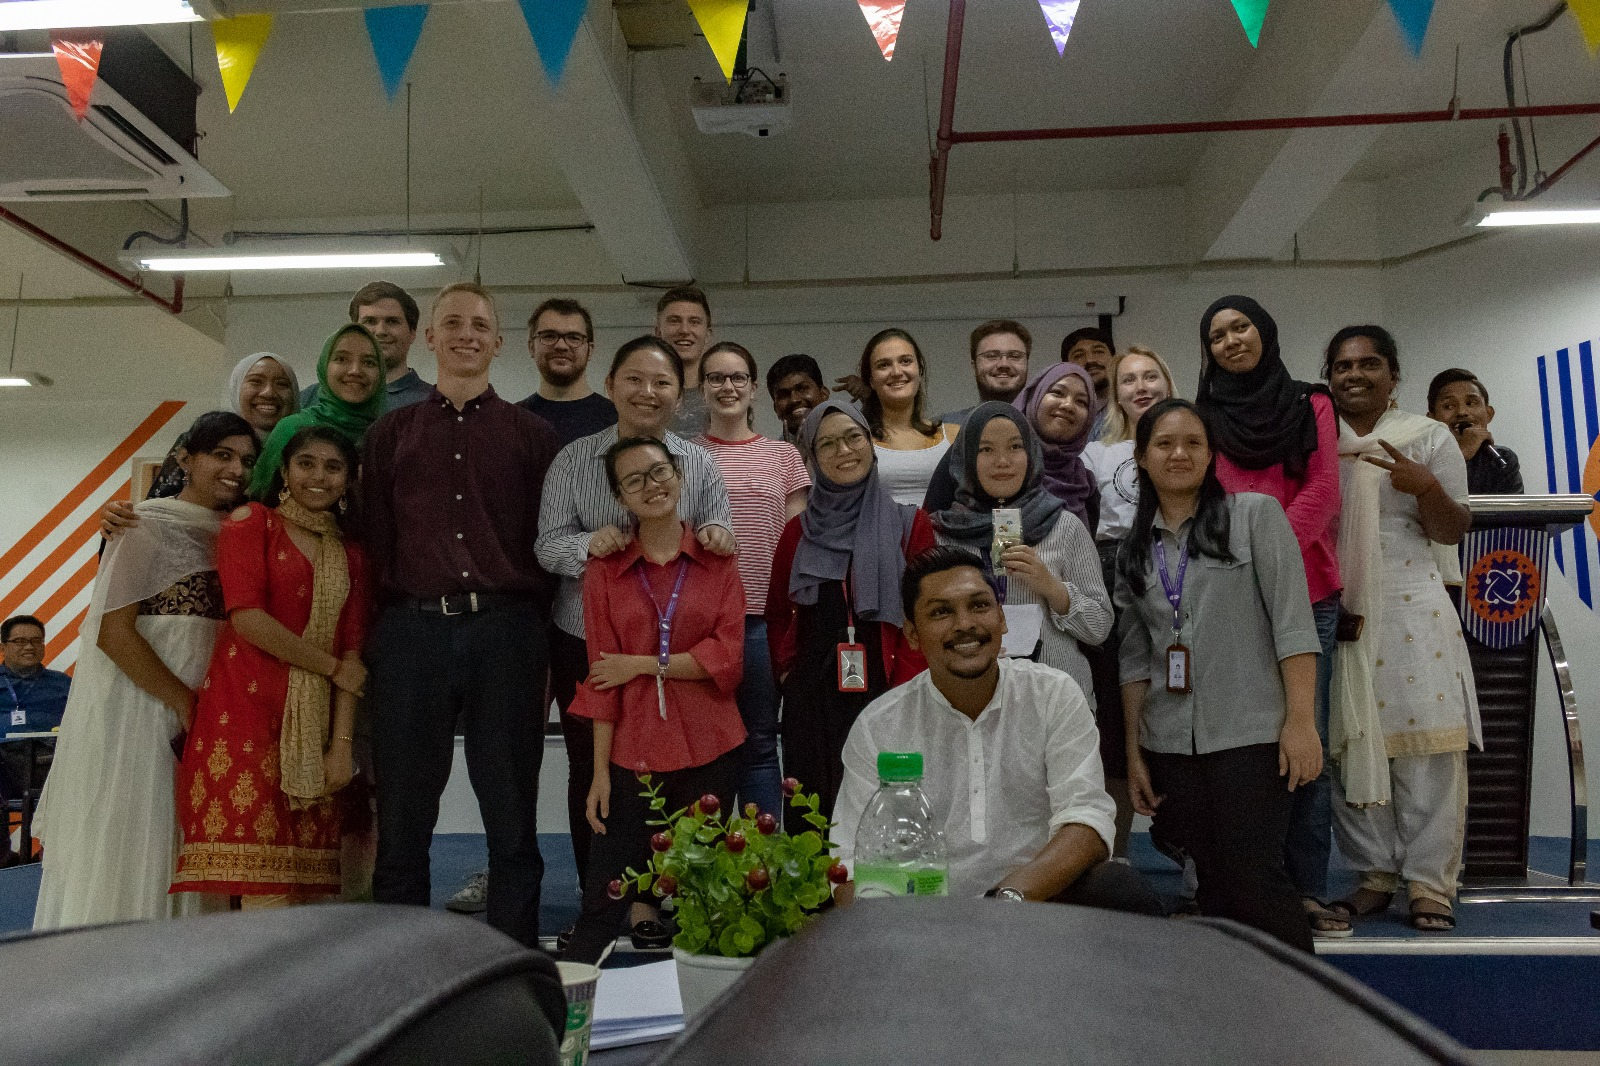 Rotterdam students with Malaysian studen